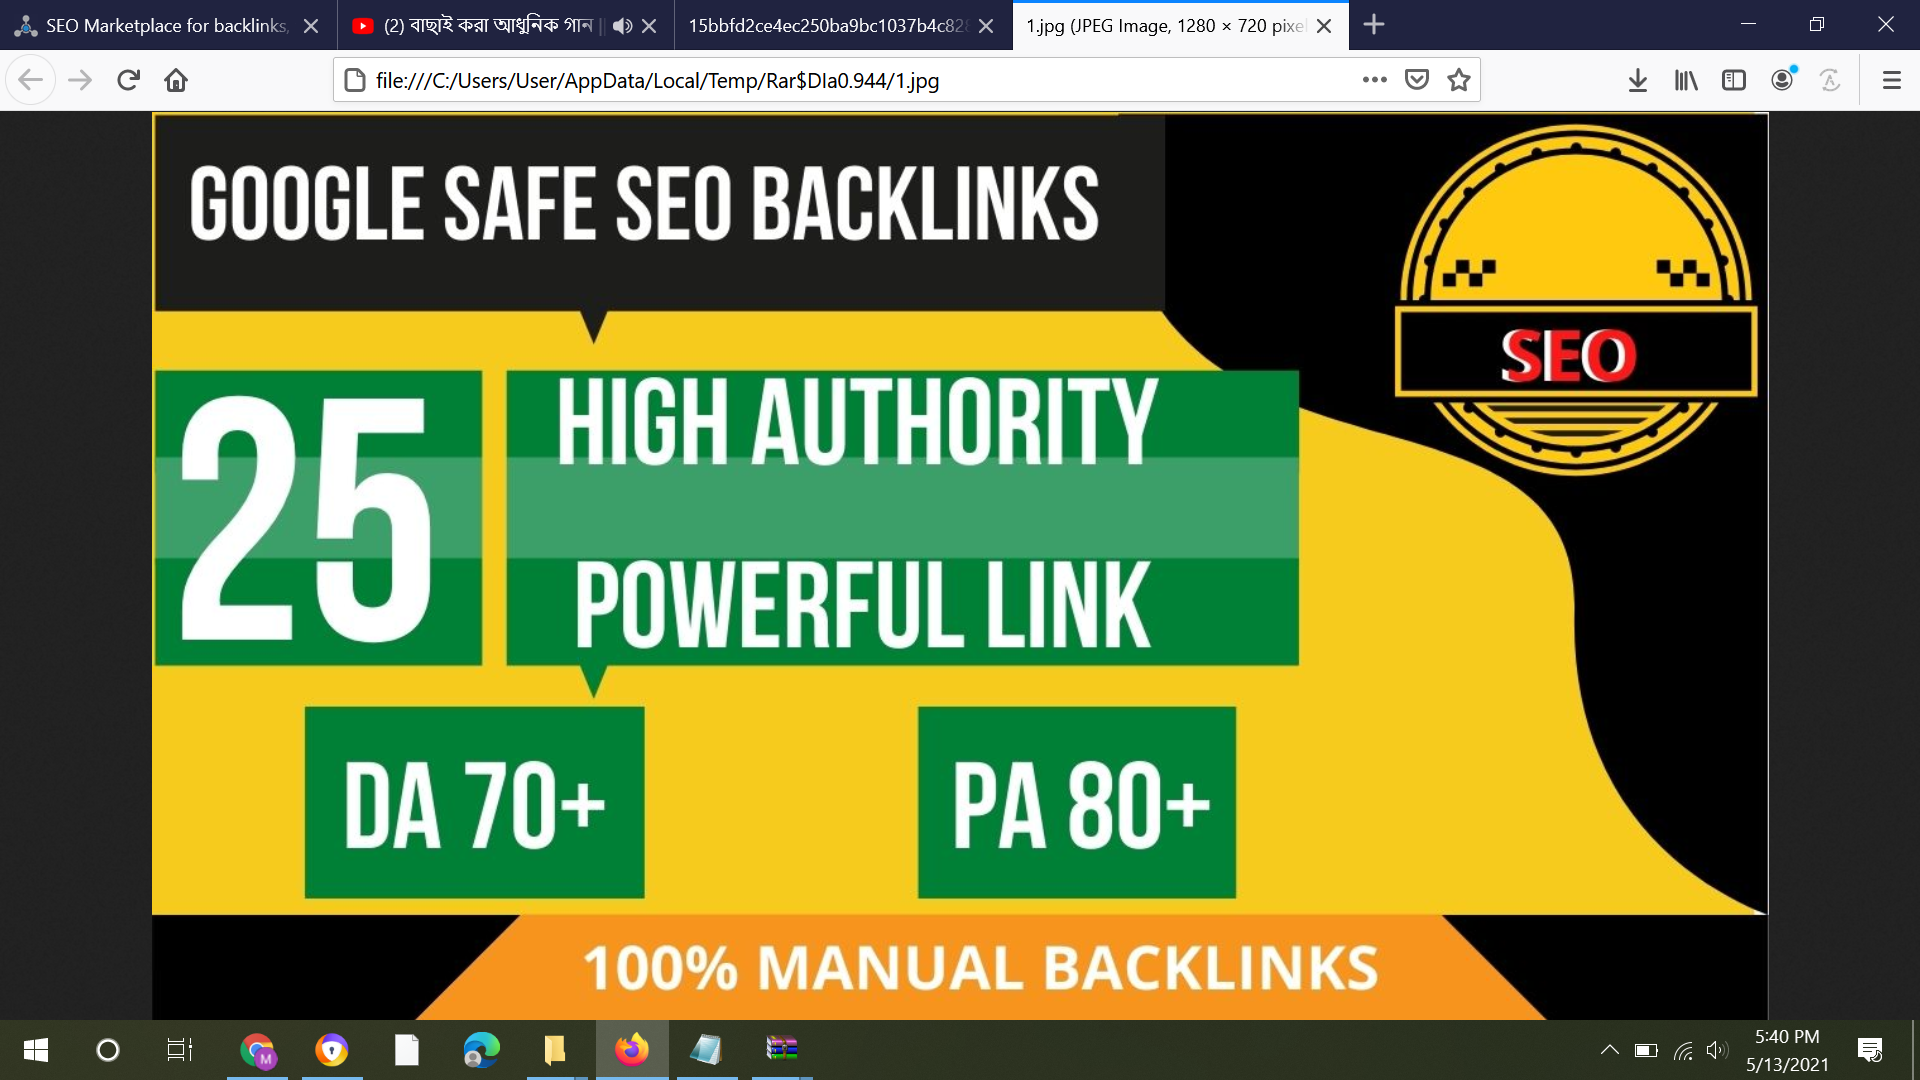 Manually Do UNIQUE SEO BackIinks On DA 70+ Sites To RANK Your Website